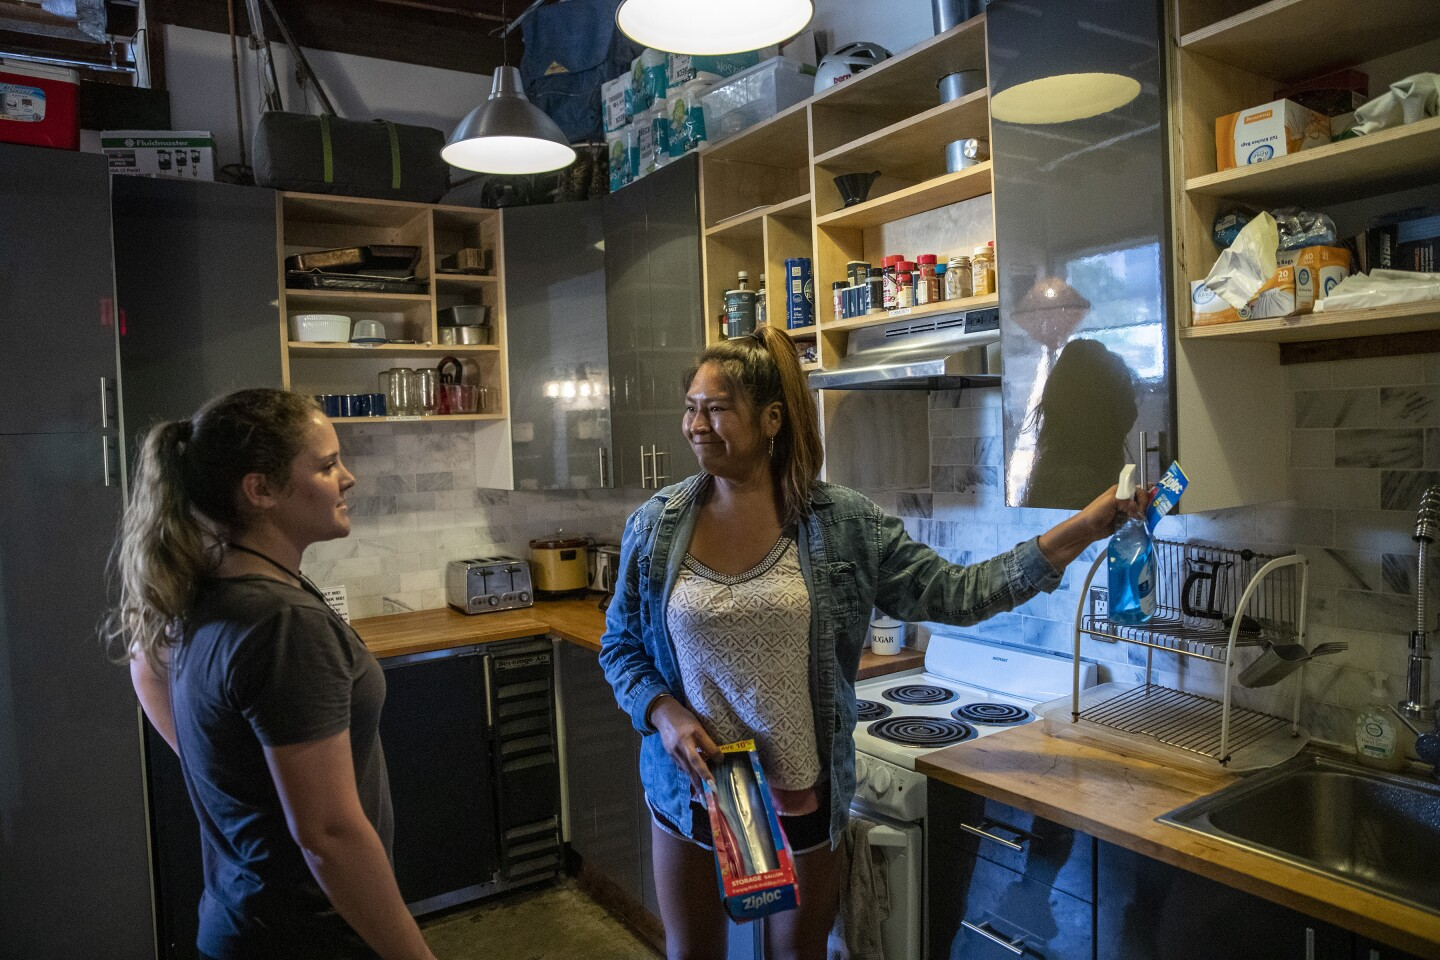 LOS ANGELES, CALIF. -- FRIDAY, OCTOBER 4, 2019: German tourist Lilly Geyer, 22, left, chats with front desk receptionist Blosson Manuel, right, in the common kitchen at PodShare Los Feliz in Los Angeles, Calif., on Oct. 4, 2019. (Brian van der Brug / Los Angeles Times)